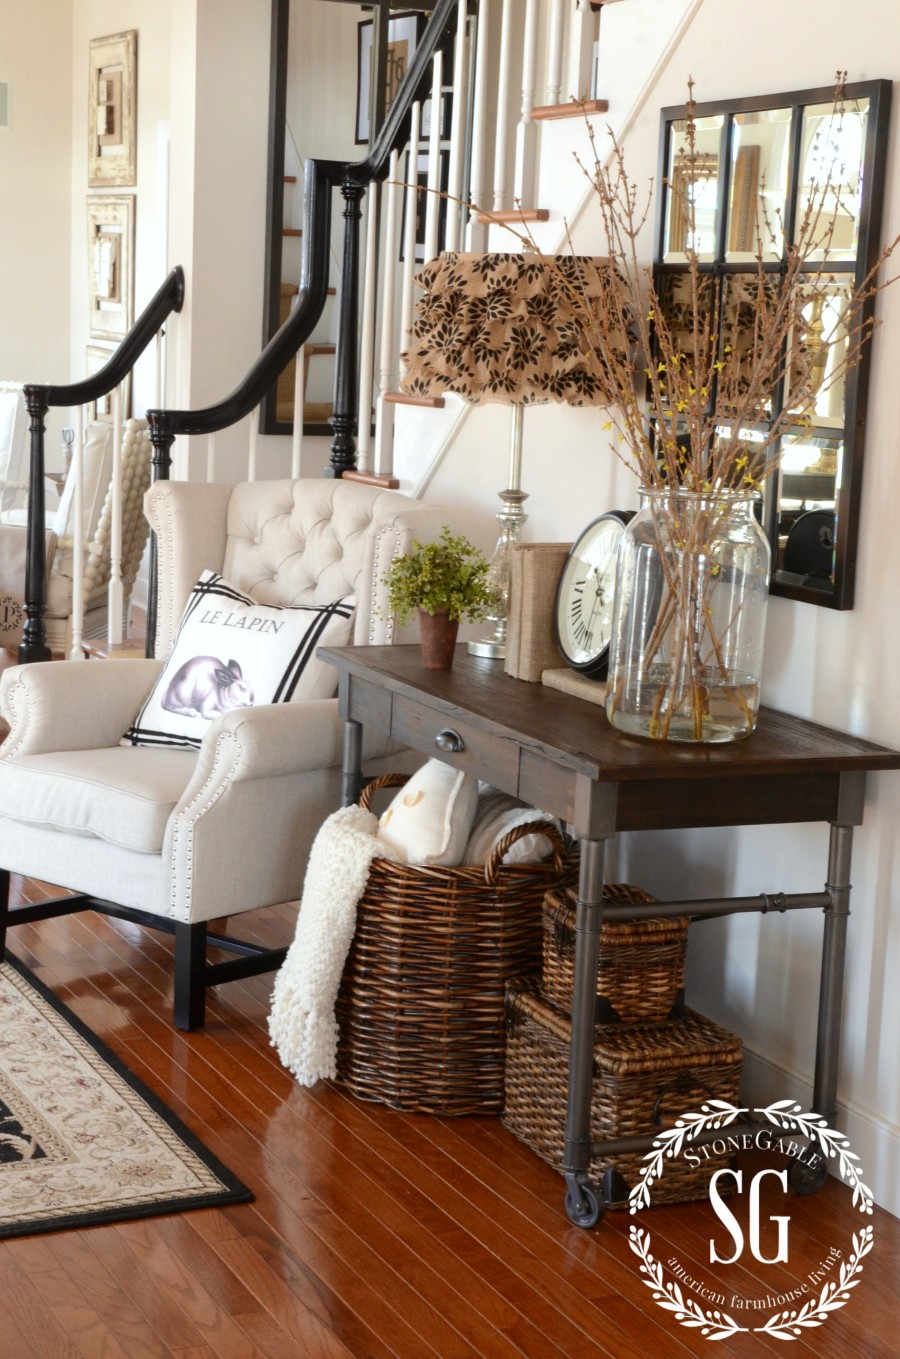 ADDING AN UPHOLSTERED CHAIR TO THE FOYER- breaking the decorating rules and opting for comfort-stonegableblog.com